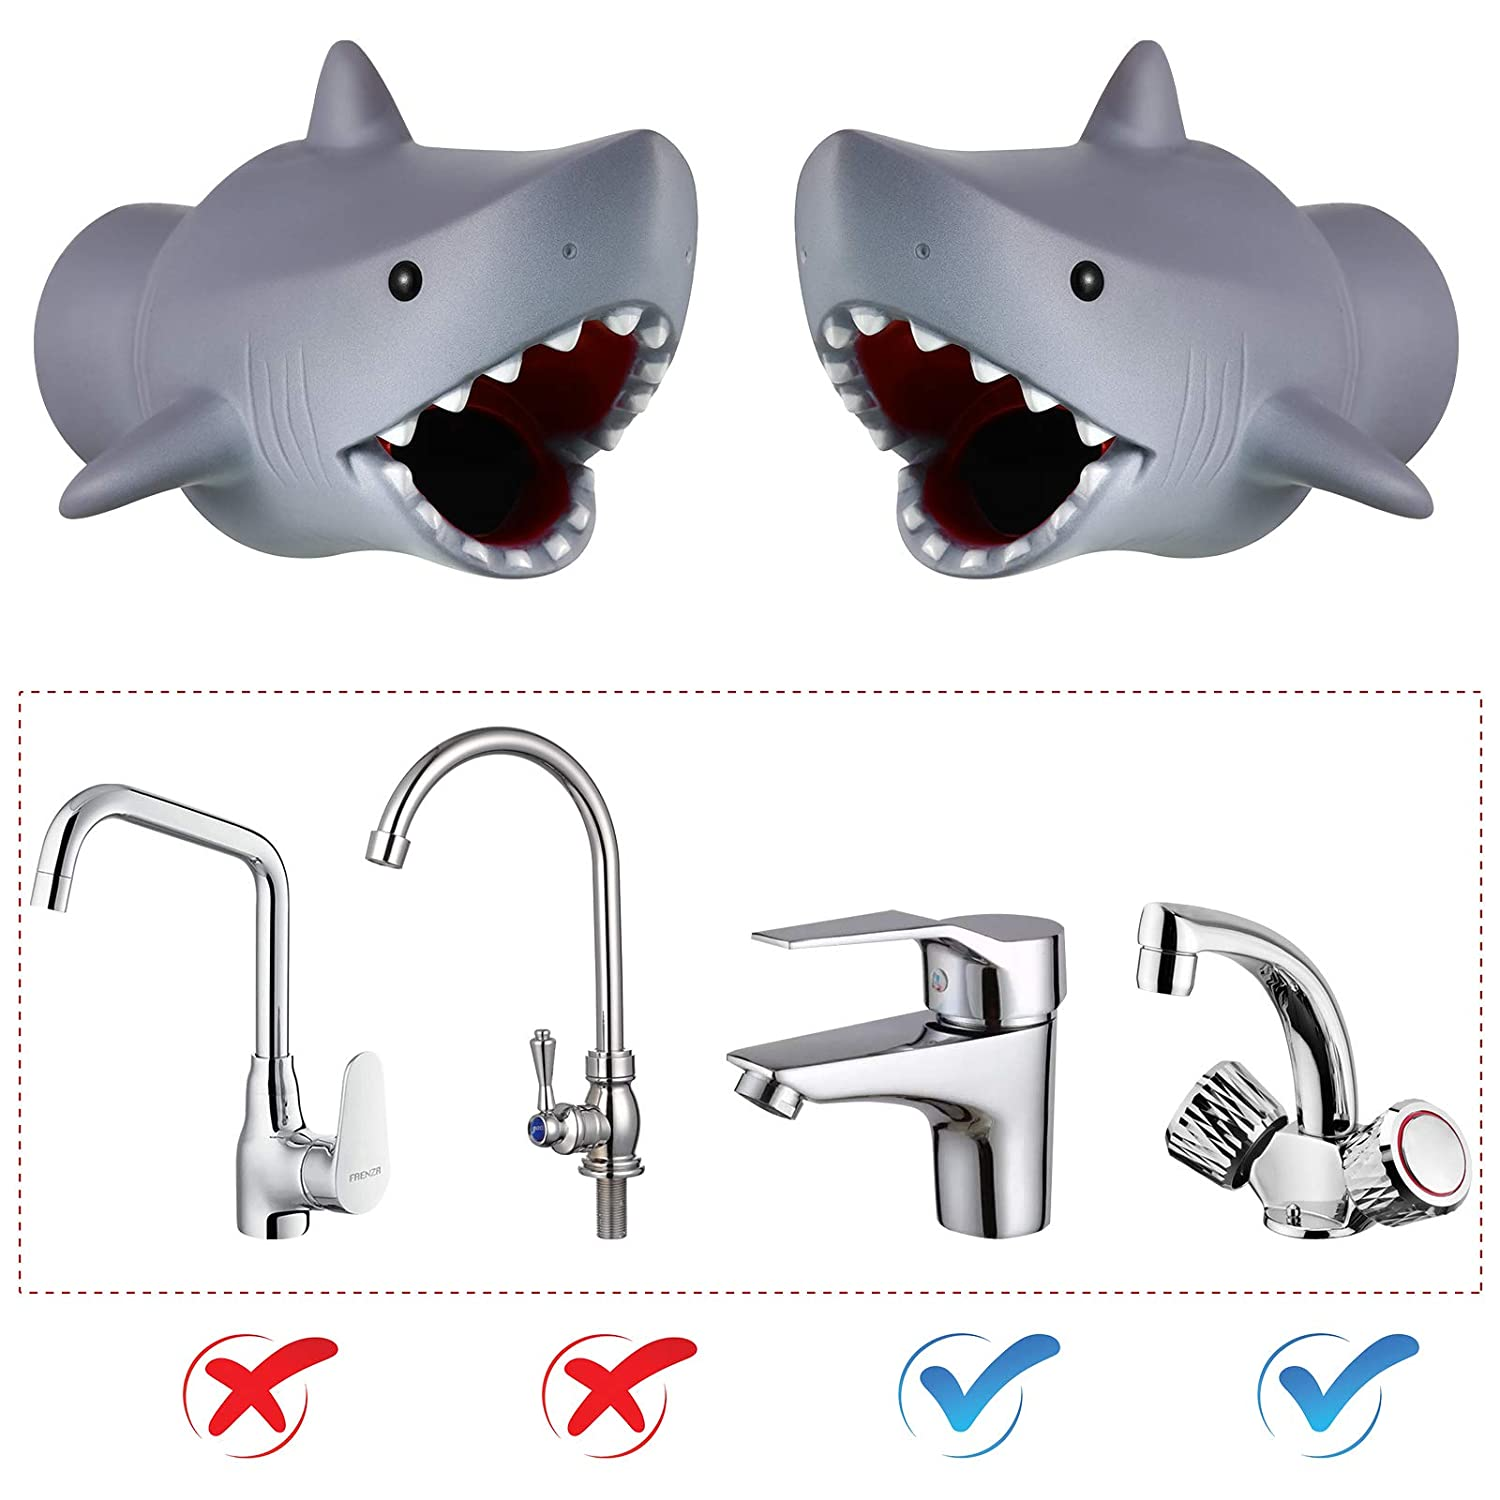 1 Piece Bath Spout Cover Faucet Cover Baby Bathroom Tub Soft Faucet Spout Cover Protector and 2 Pieces Bath Toys for for Baby Kids Toddler Bathroom Fun and Safety